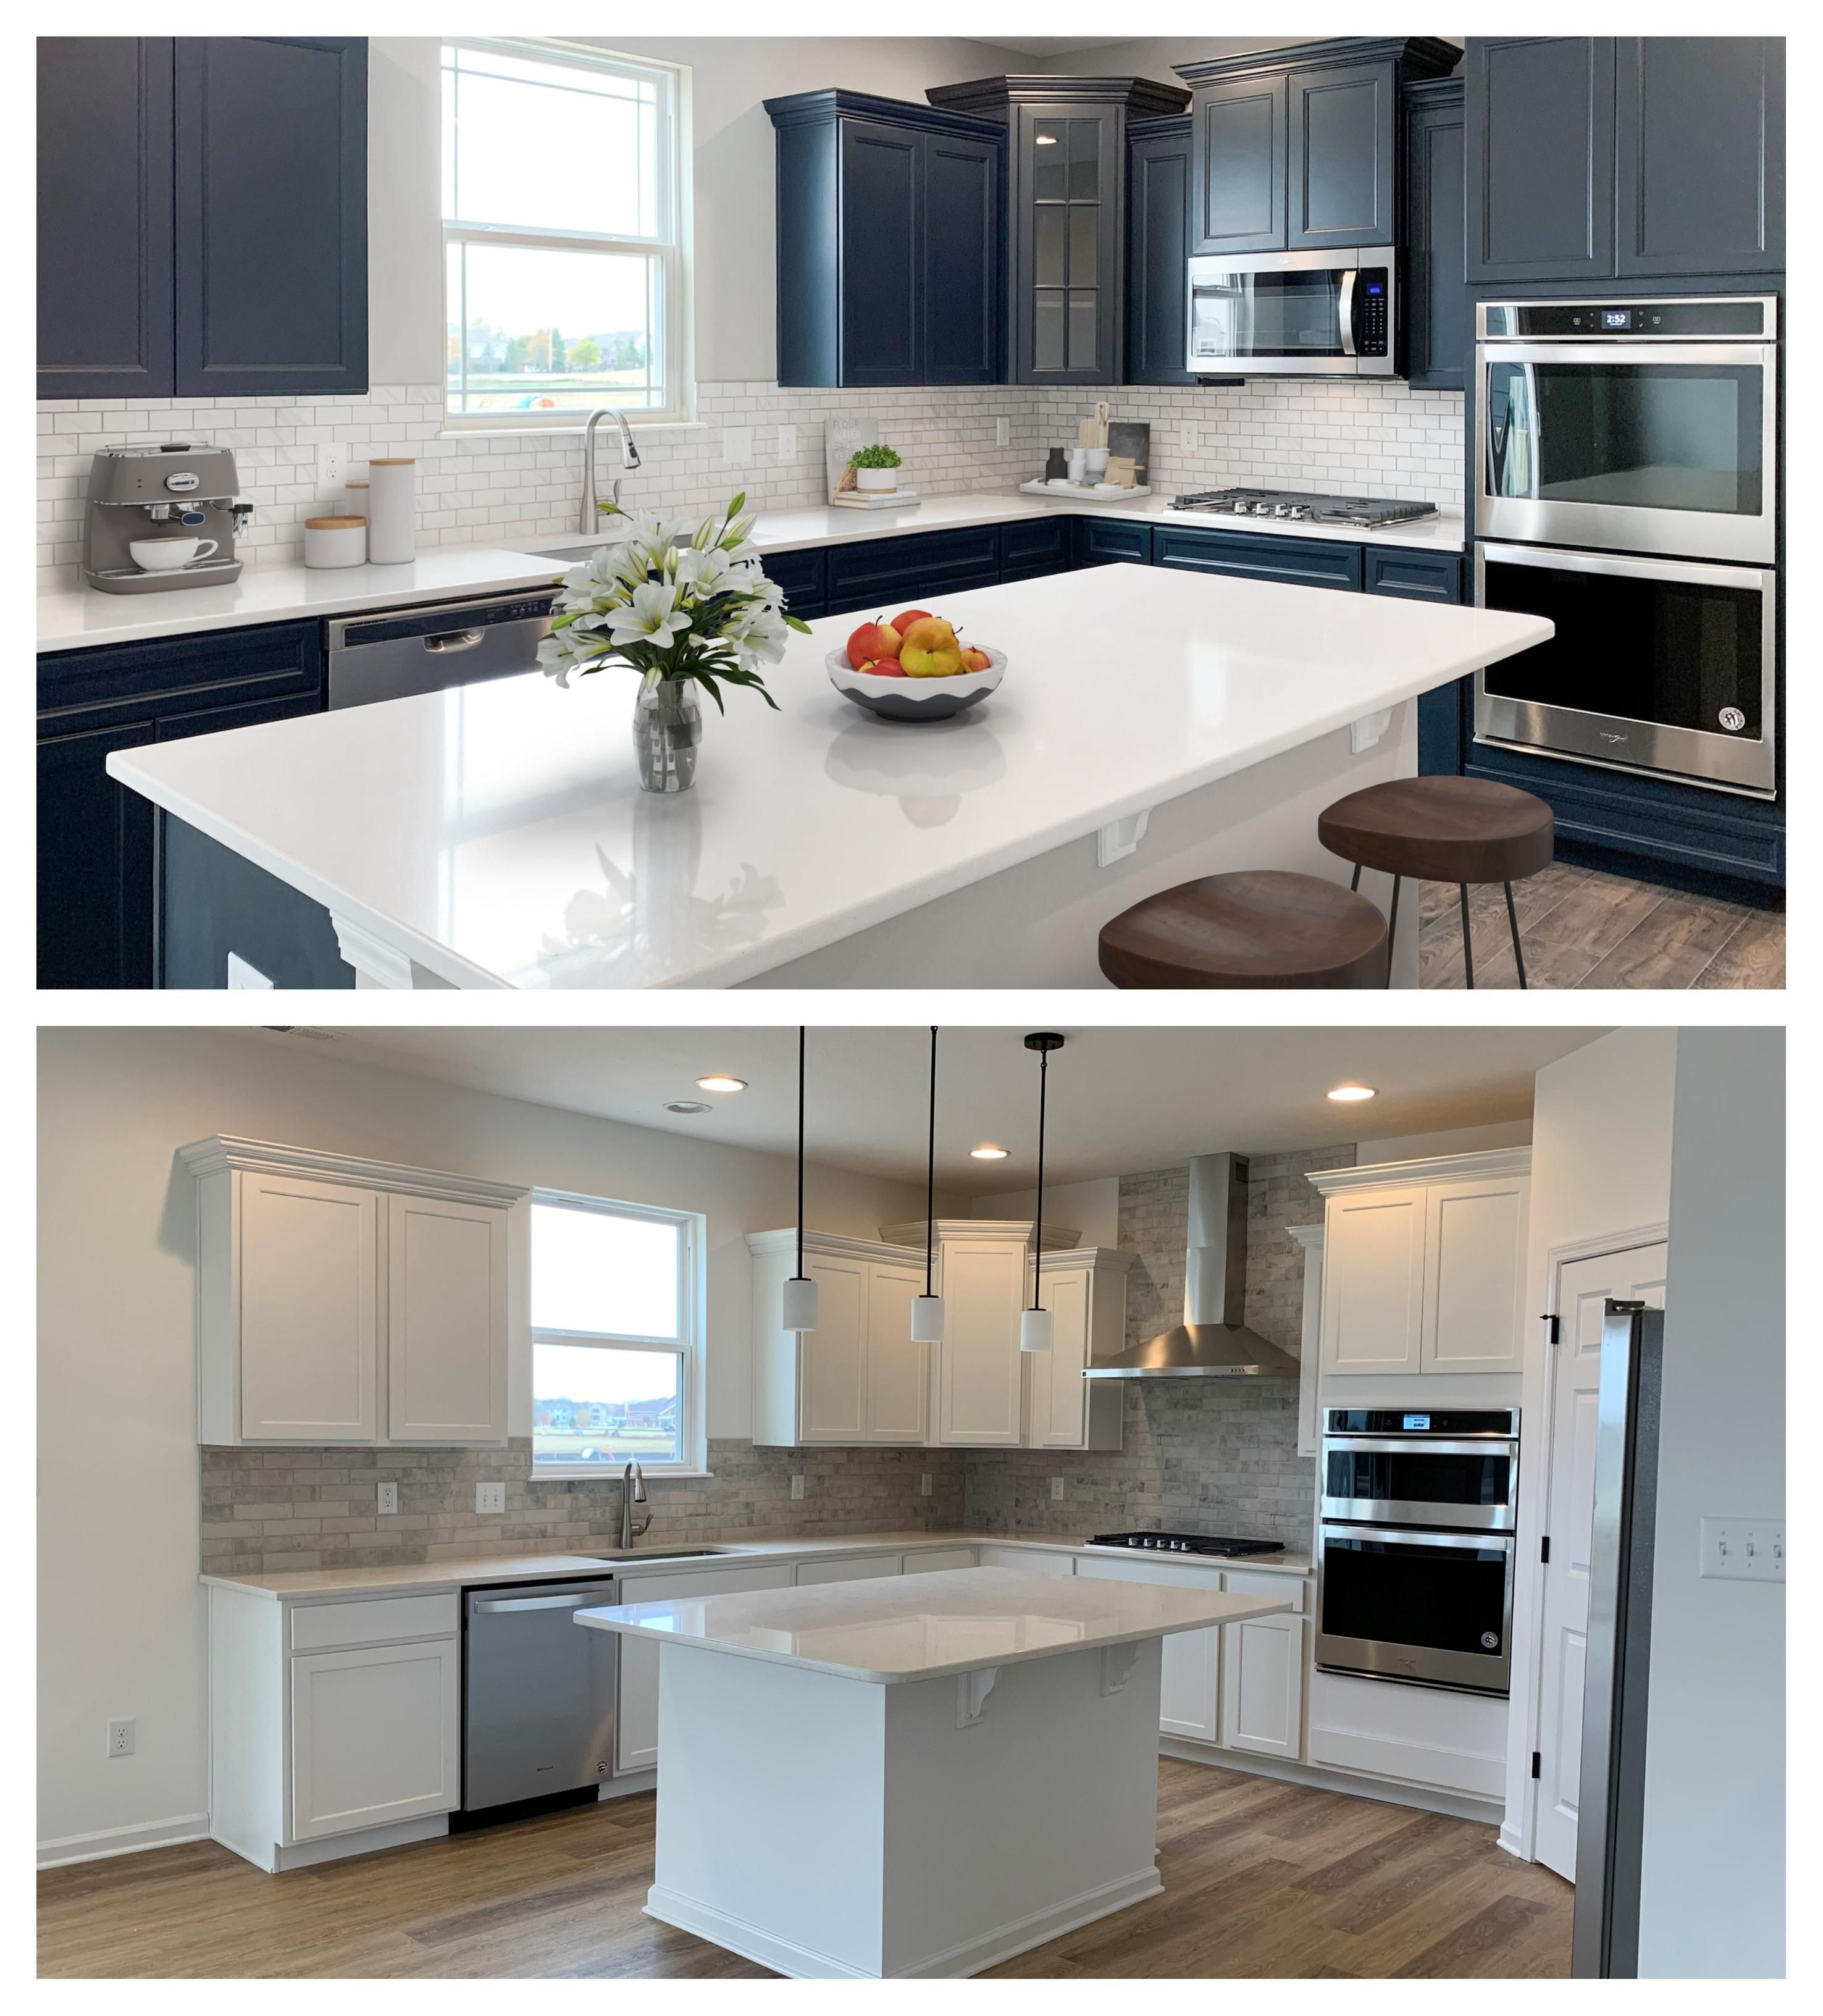 Which Kitchen Cabinets Do You Prefer Both Are Available To New Homeowners At West Rail At The Station In Westfield In In 2020 New Homeowner Kitchen Station